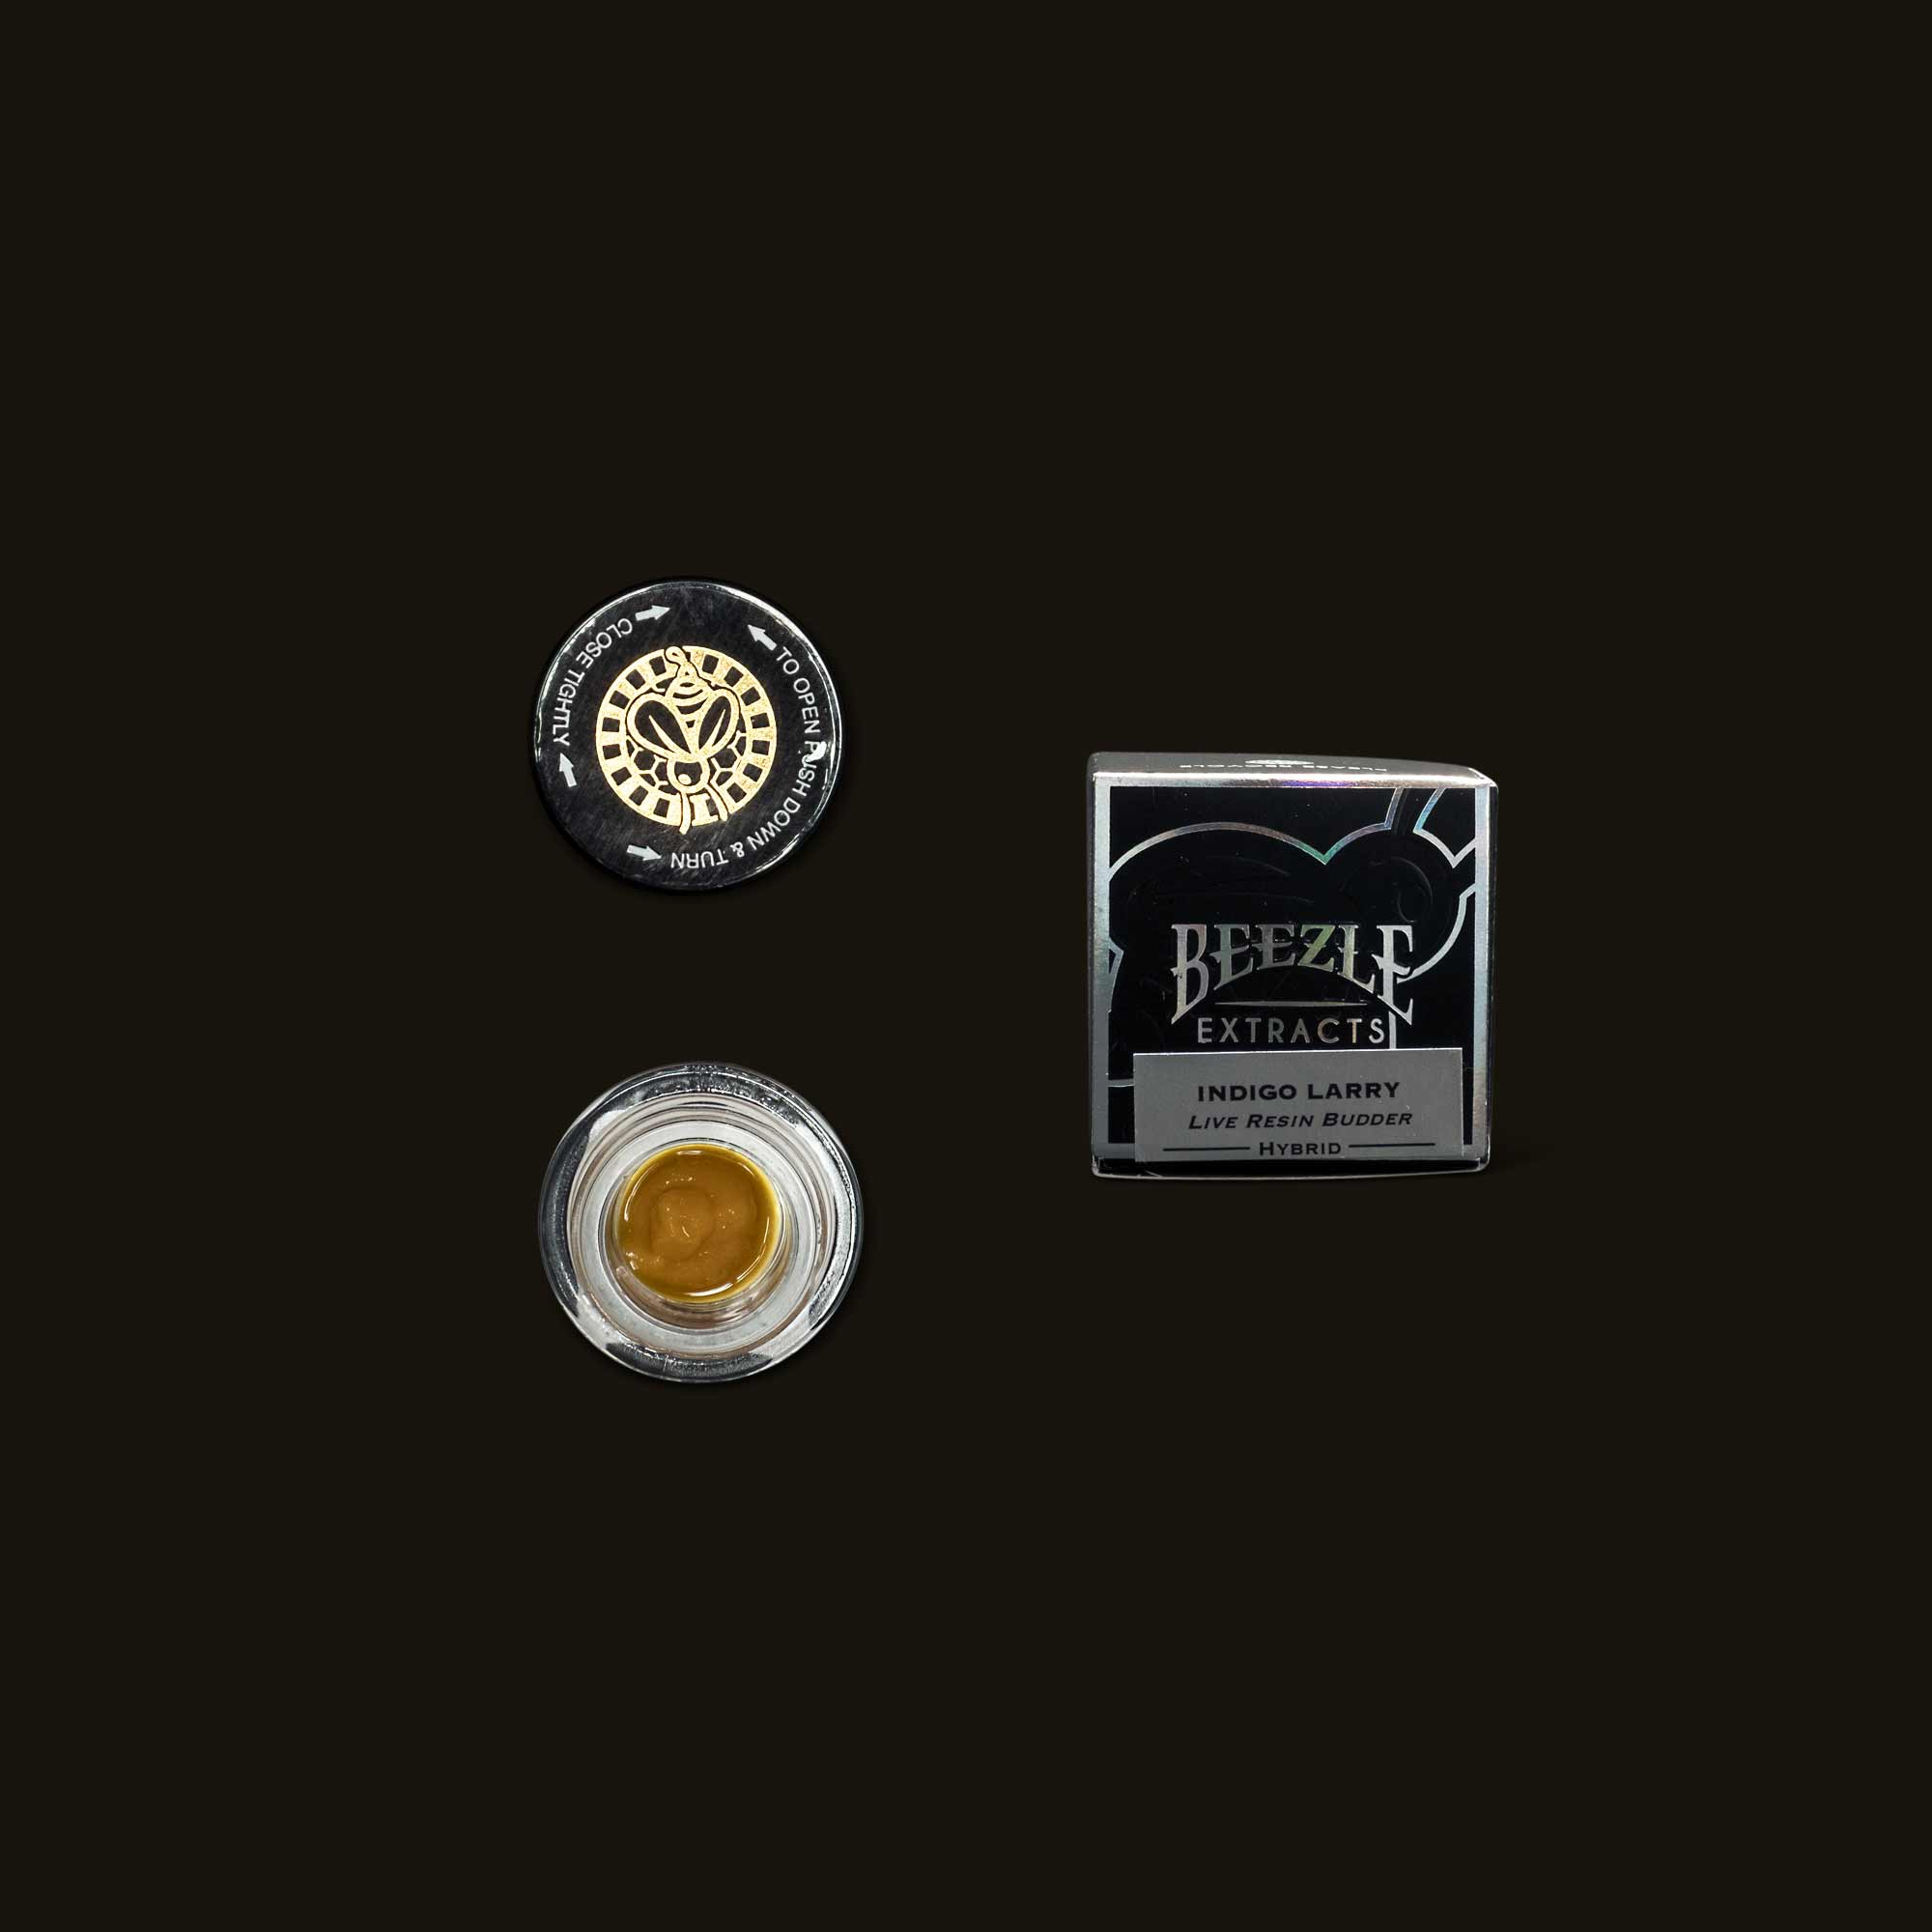 Beezle Indigo Larry Live Resin Budder